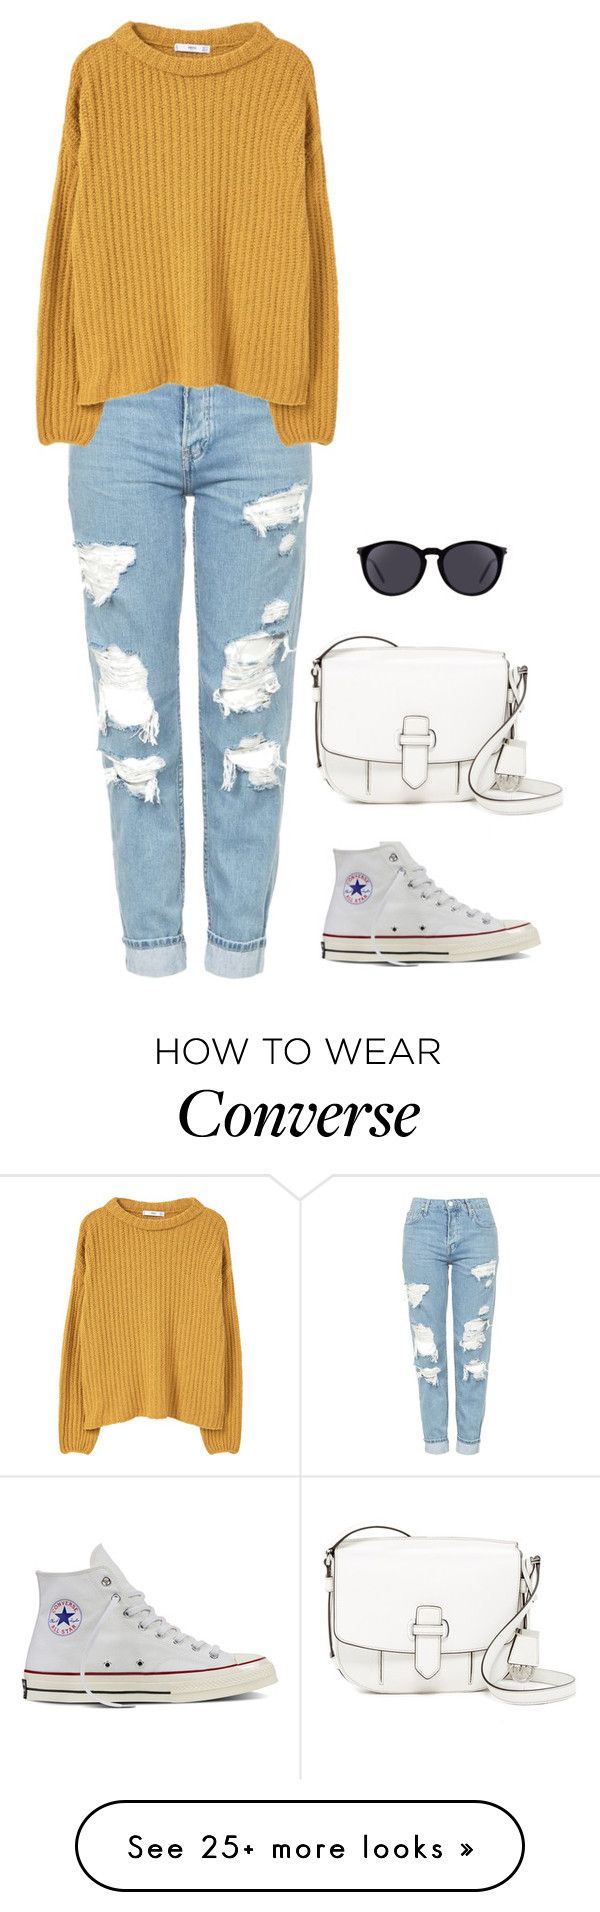 """Untitled #1385"" by r-redstall on Polyvore featuring Topshop, MANGO, Converse, MICHAEL Michael Kors and Yves Saint Laurent"